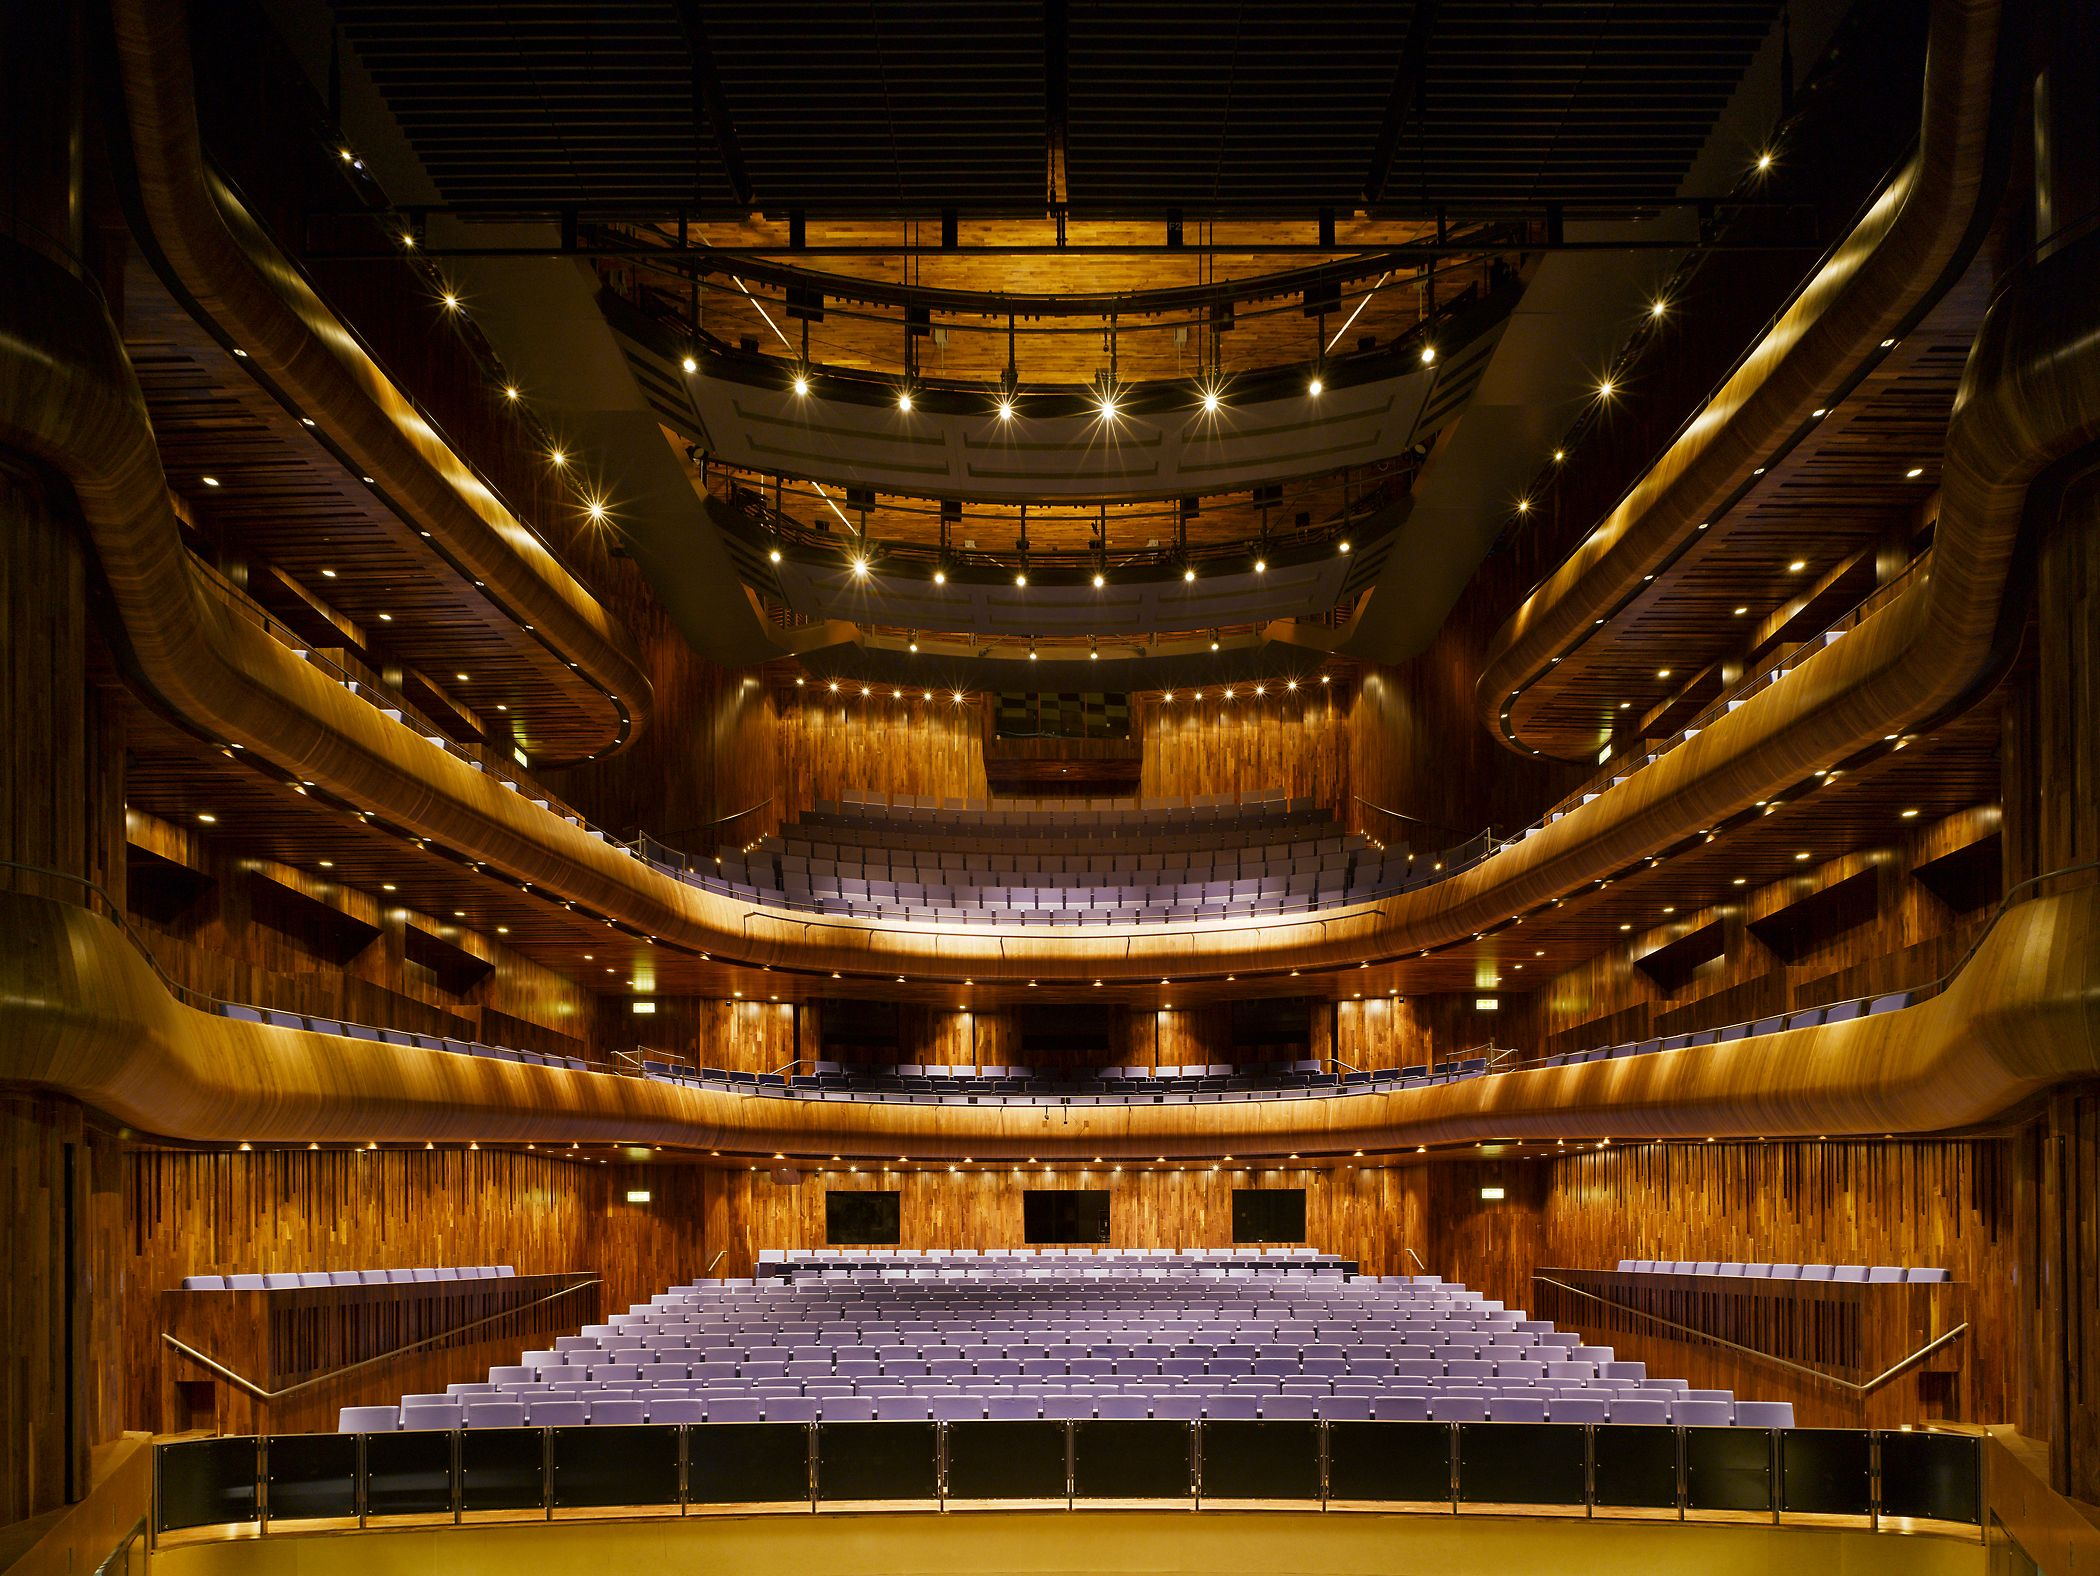 National opera house wexford venues irish theatre for The wexford